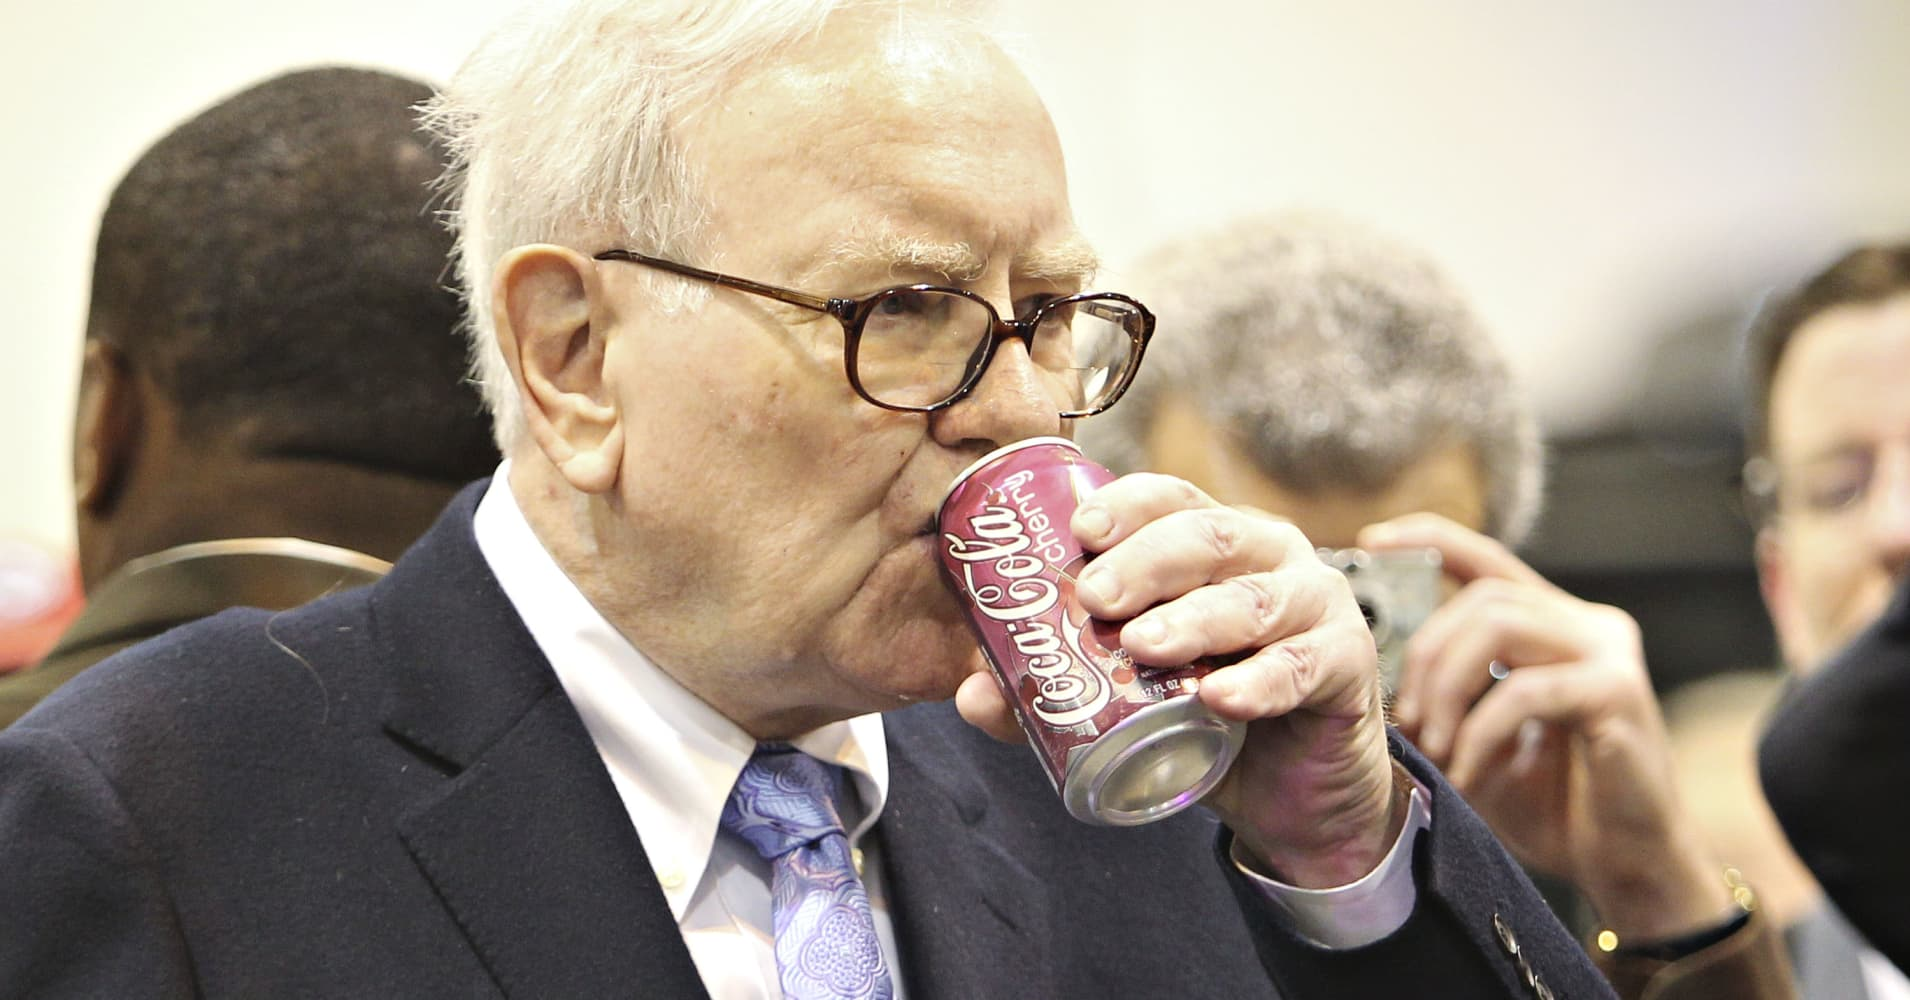 Warren Buffett's breakfast never costs more than $3.17